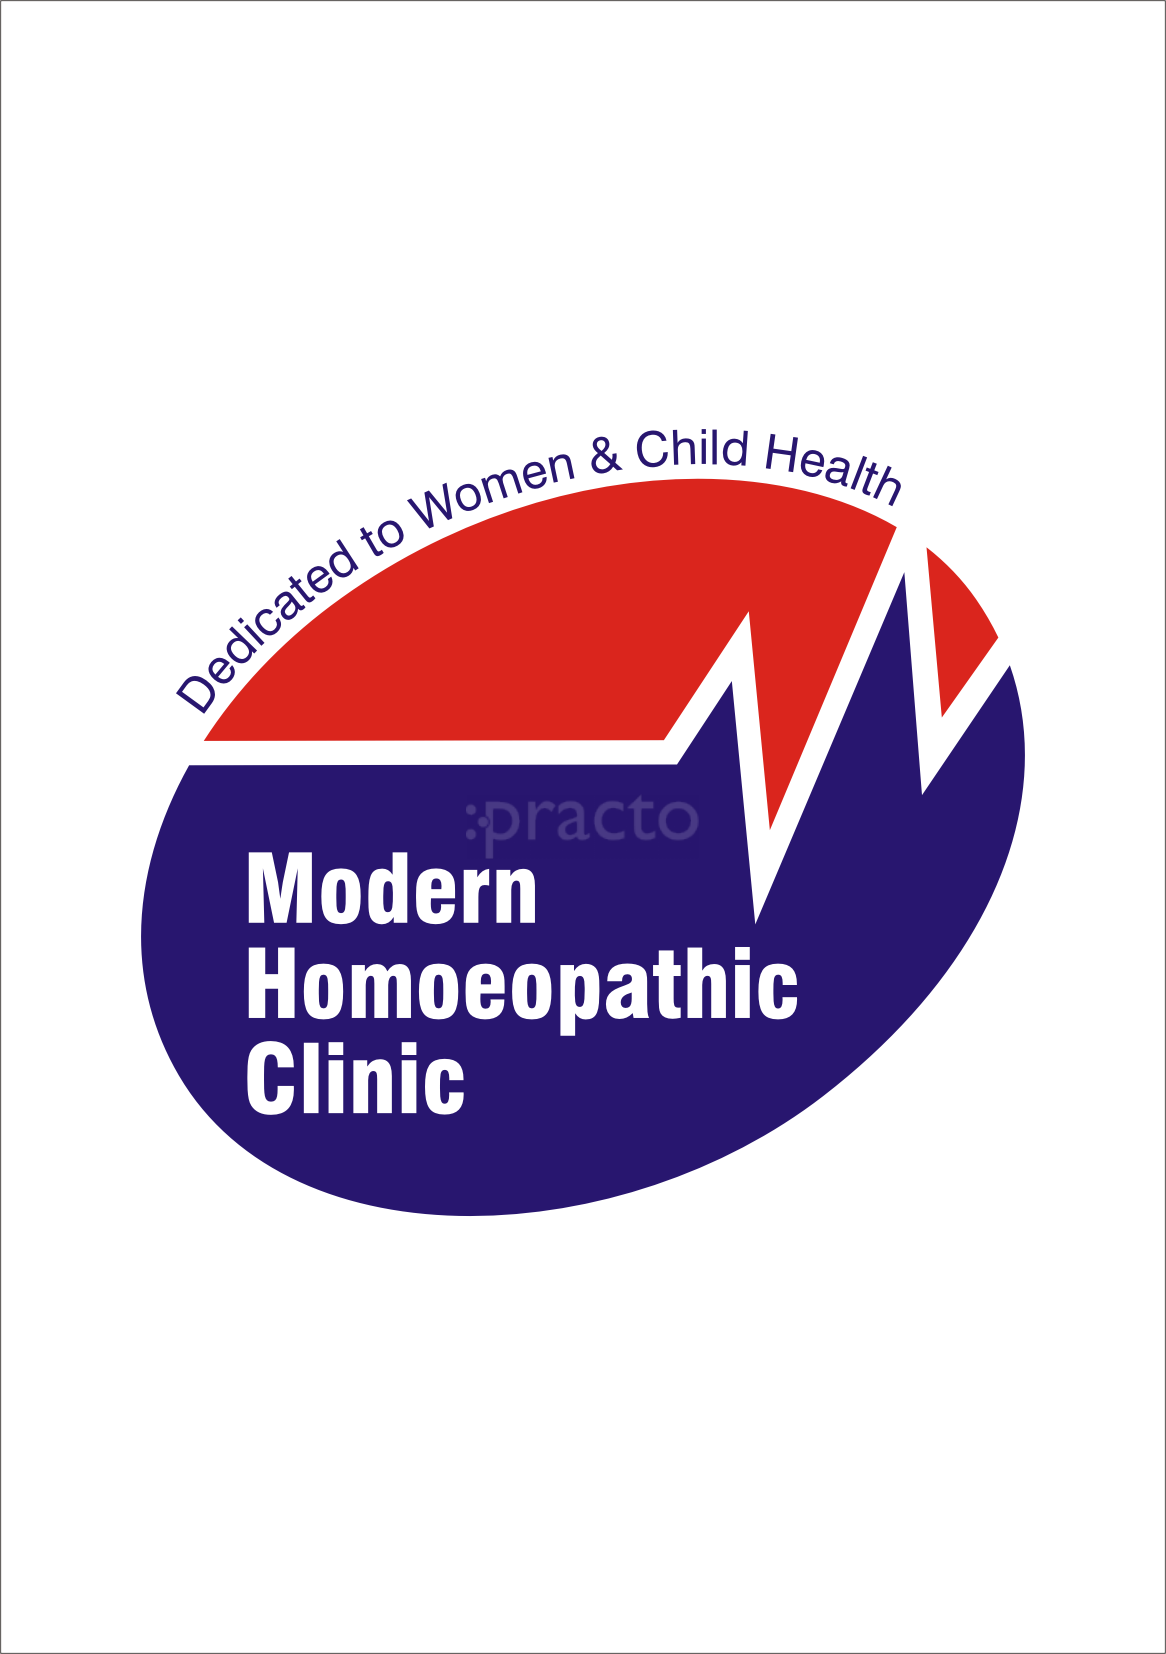 Modern Homoeopathic Clinic